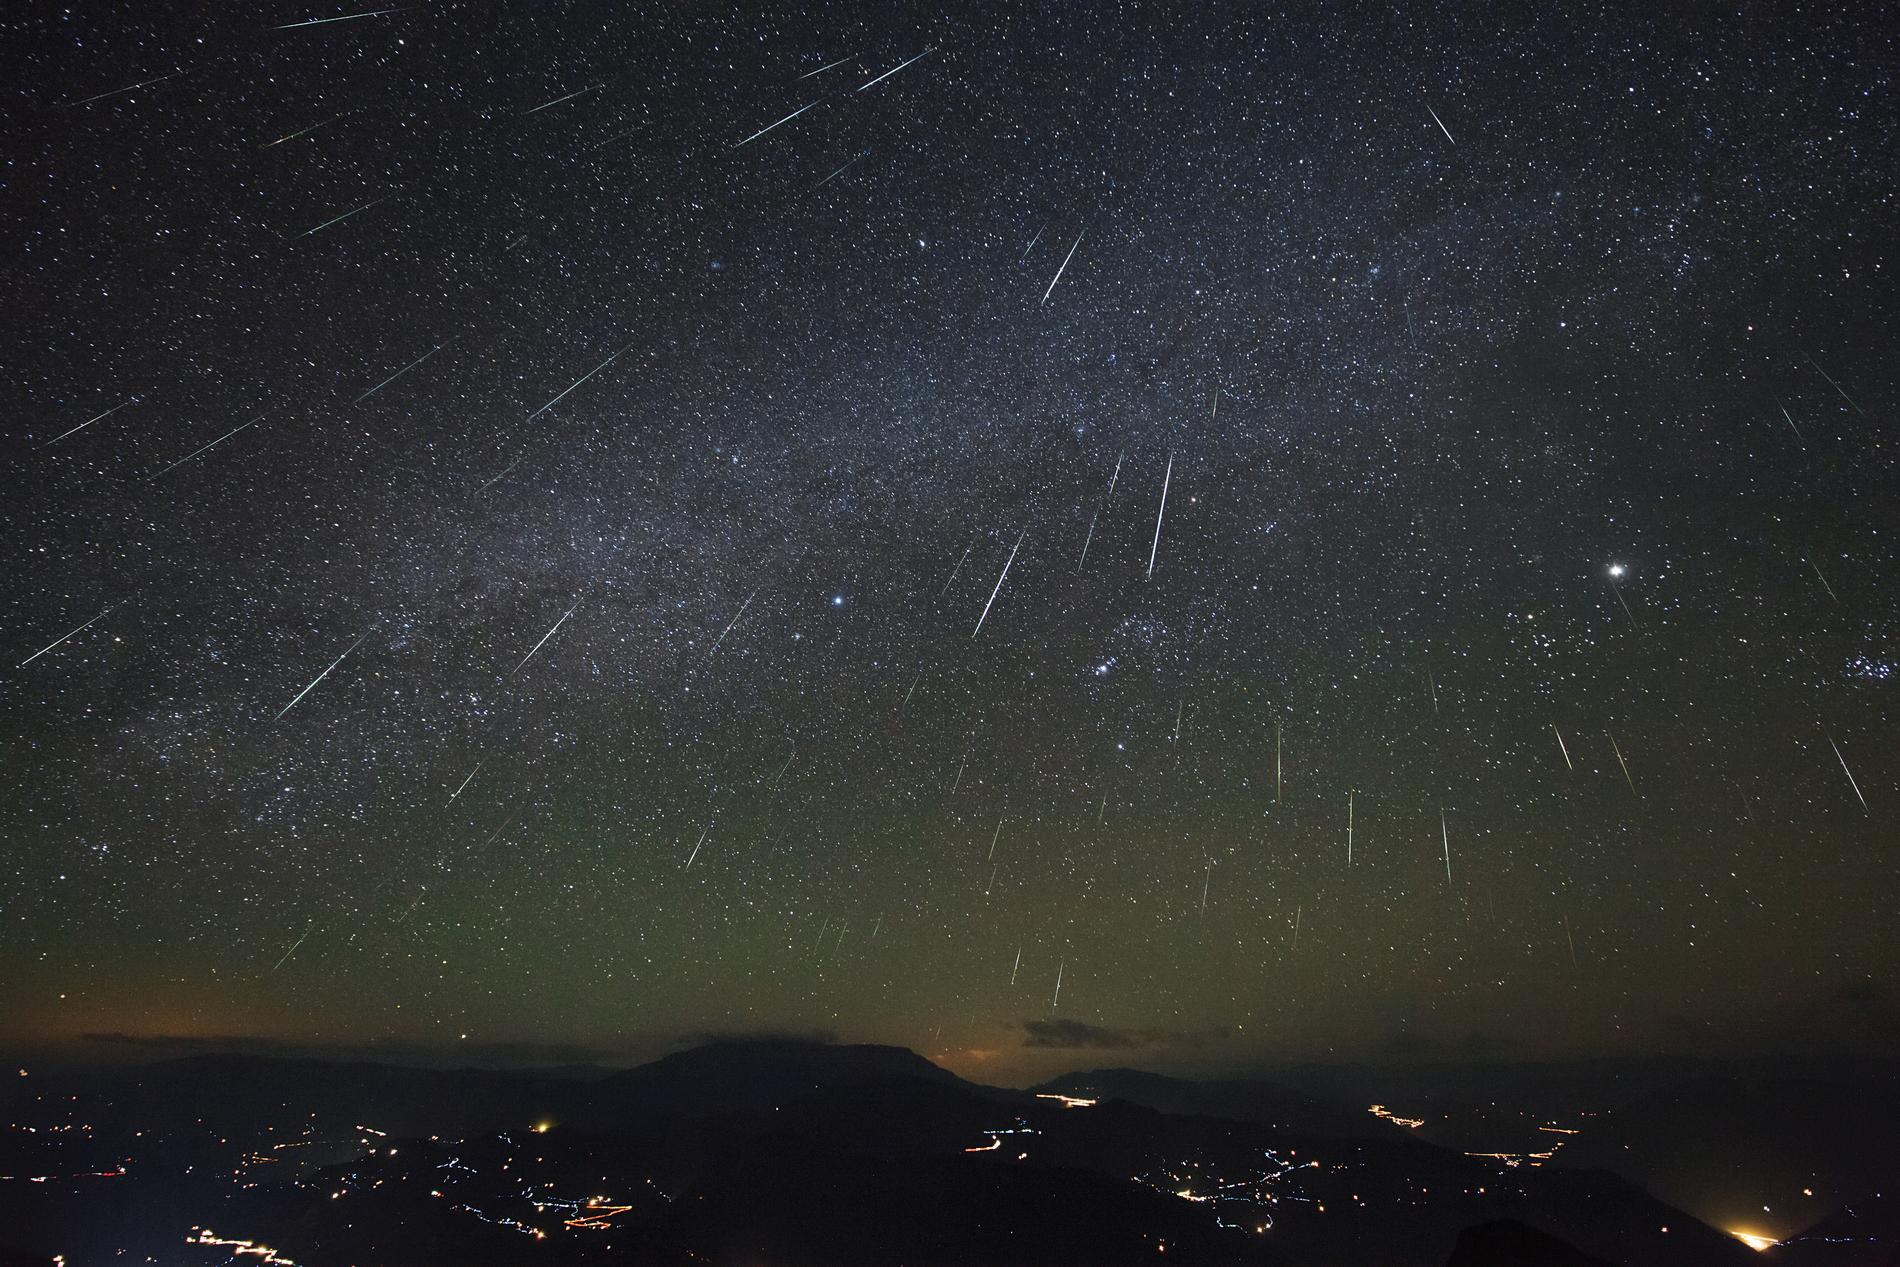 Geminids meteors peak December 13-14